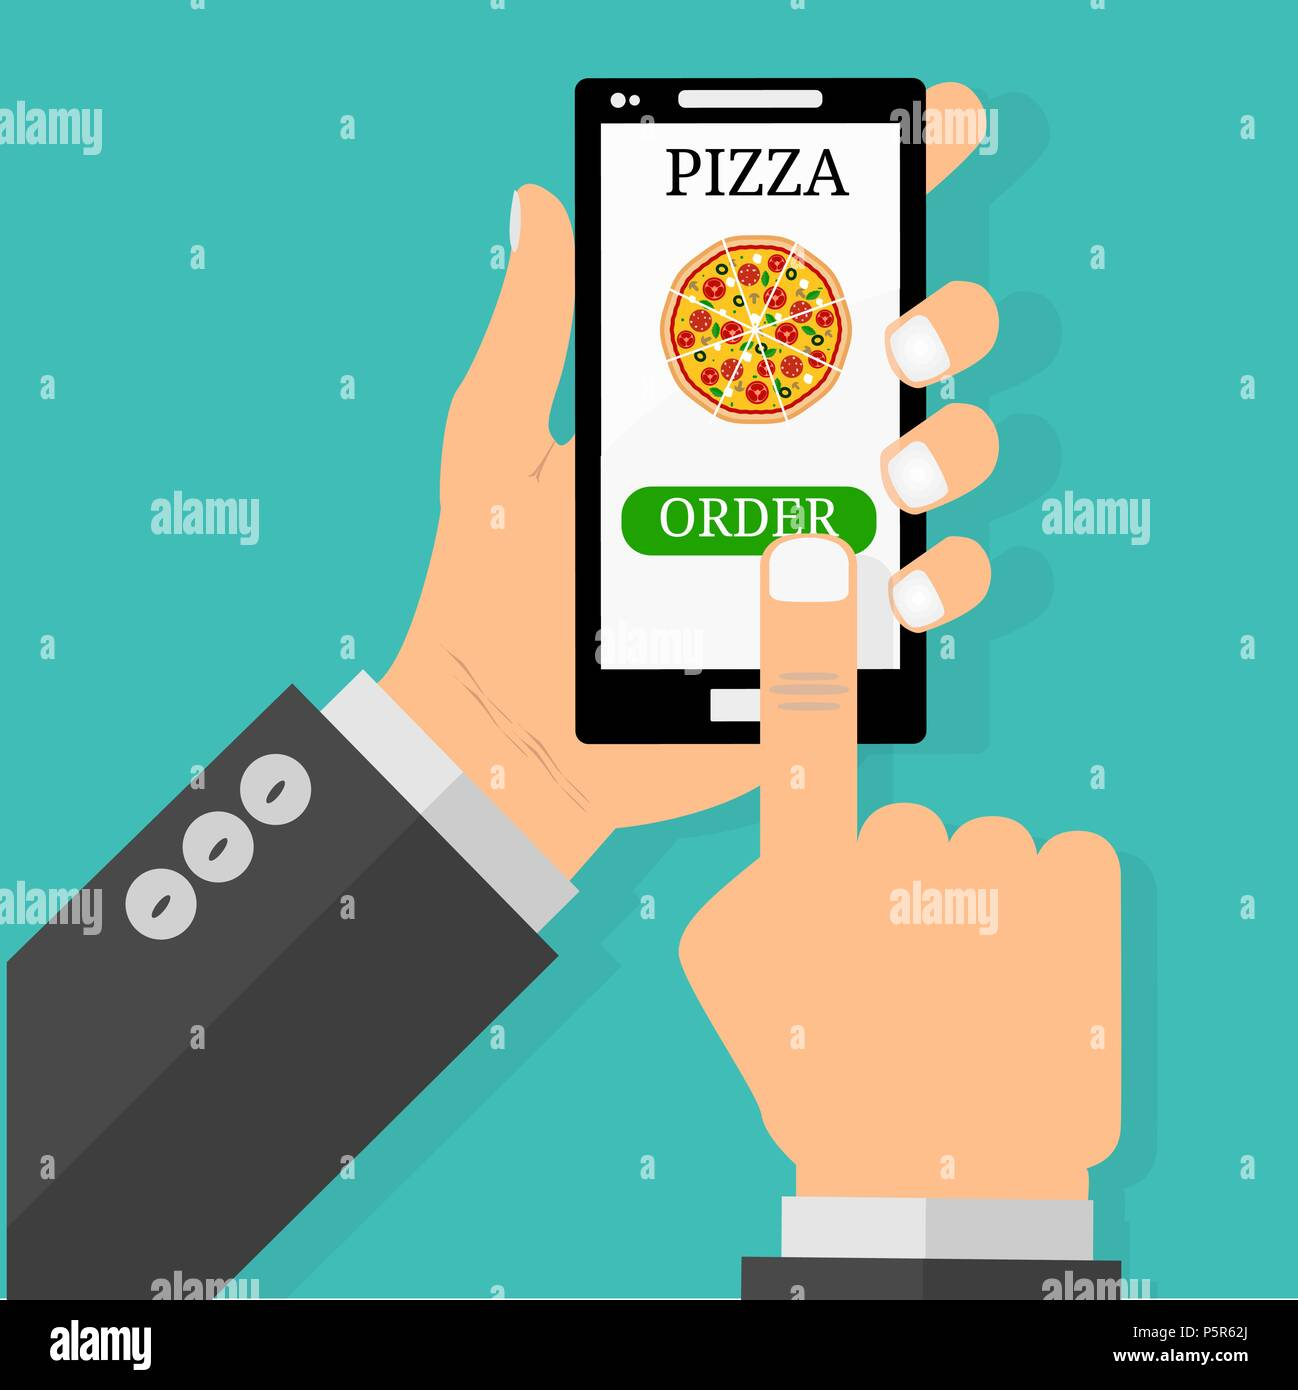 Hand holding smartphone with pizza on the screen  Order fast